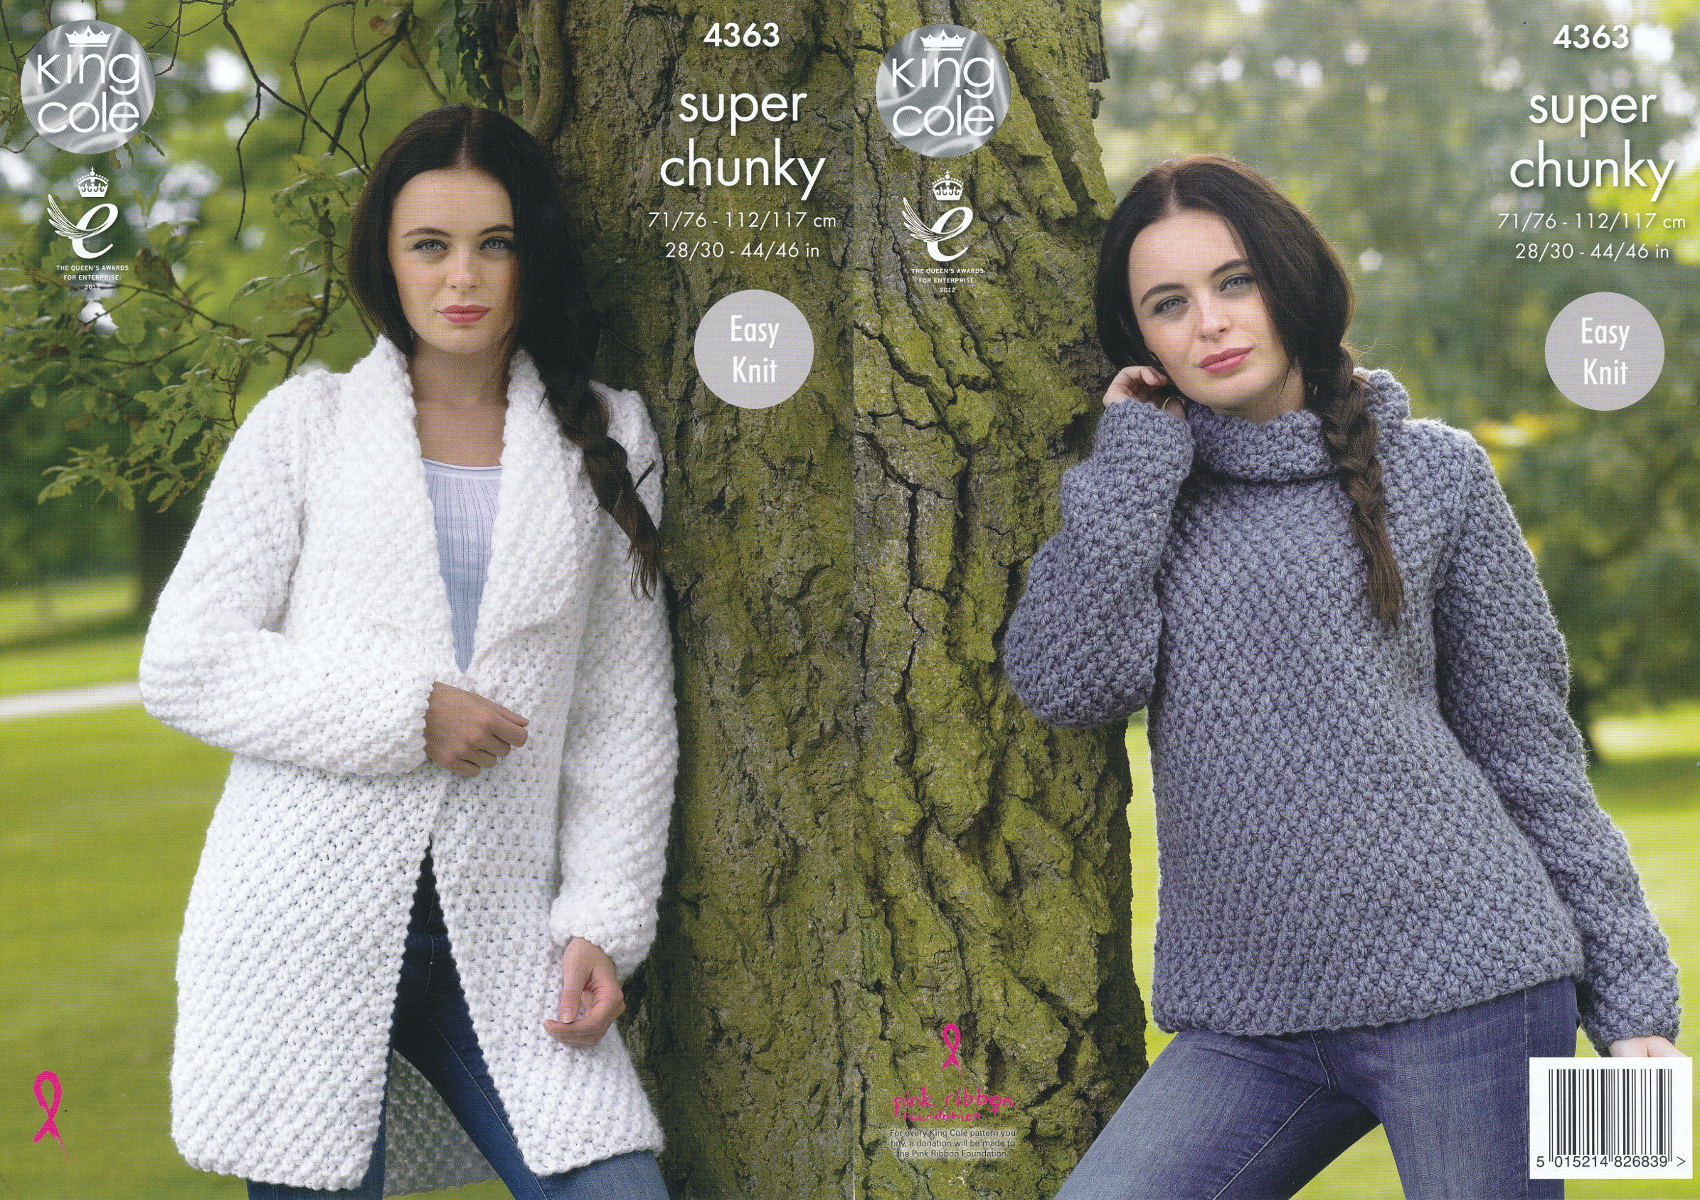 ladies super chunky knitting pattern king cole easy knit